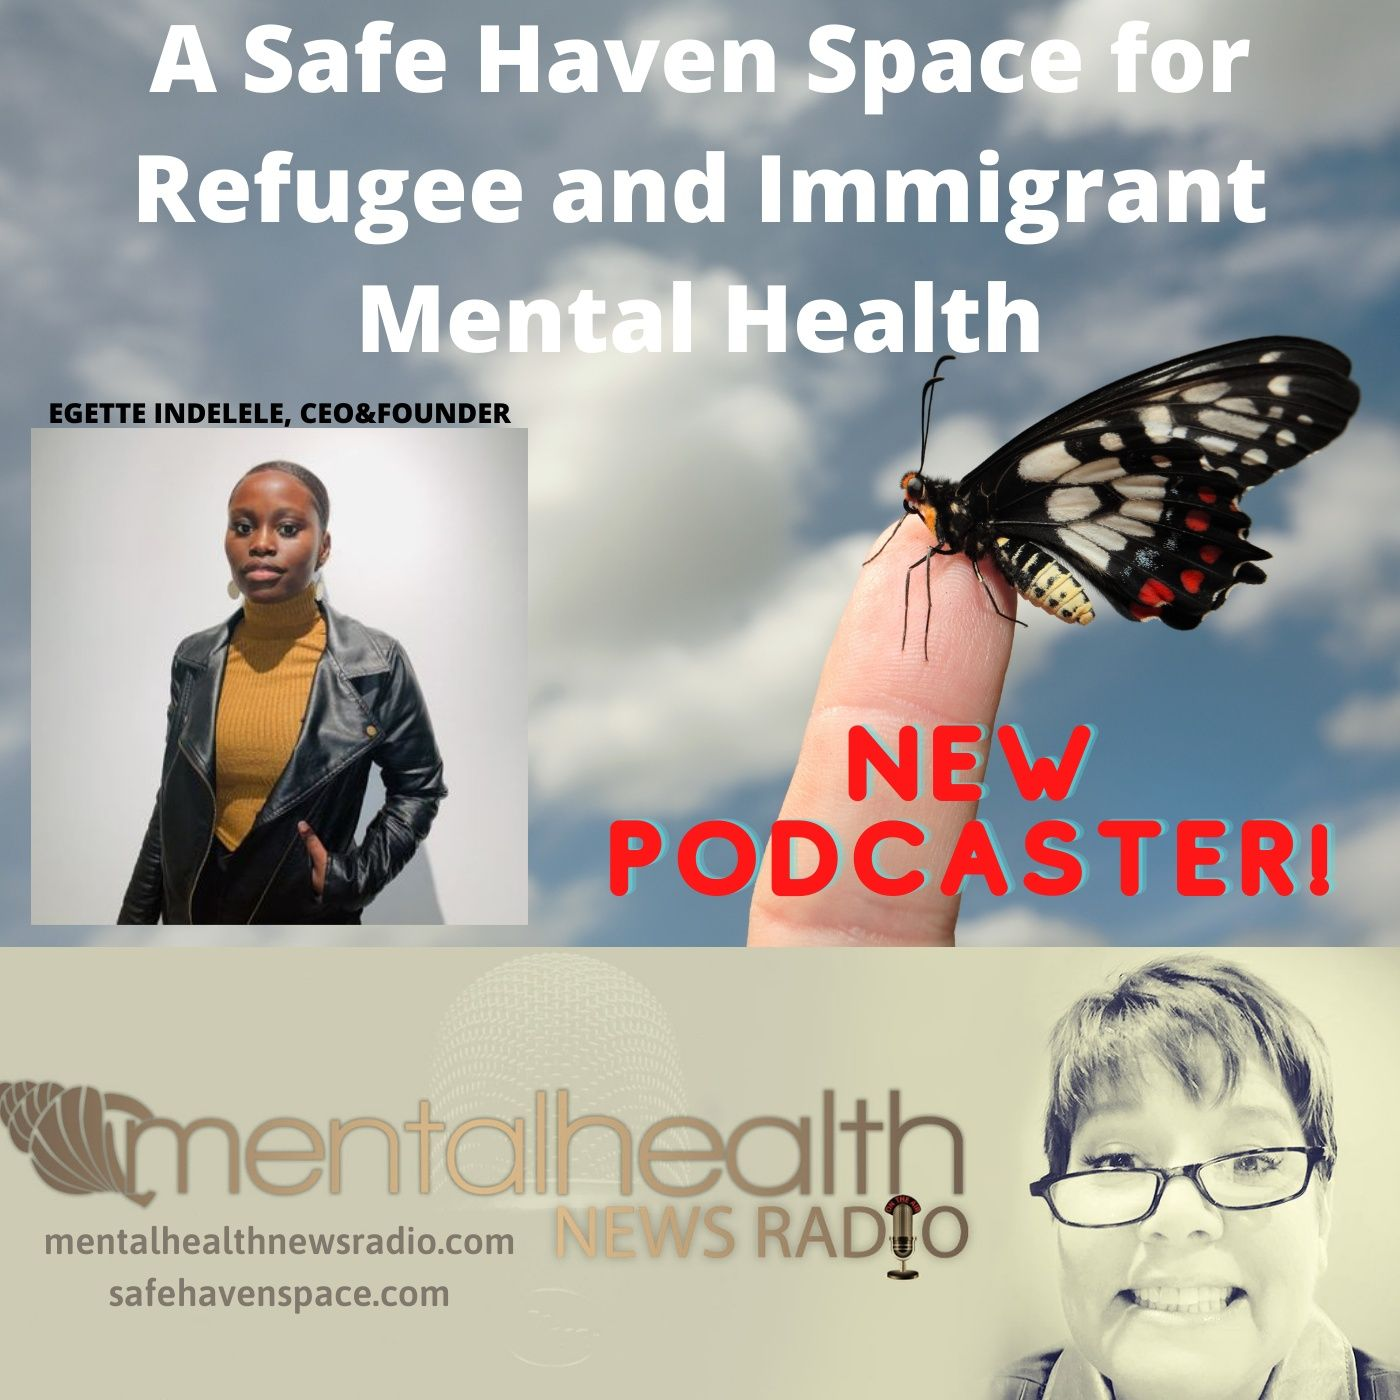 Mental Health News Radio - A Safe Haven Space for Refugee and Immigrant Mental Health